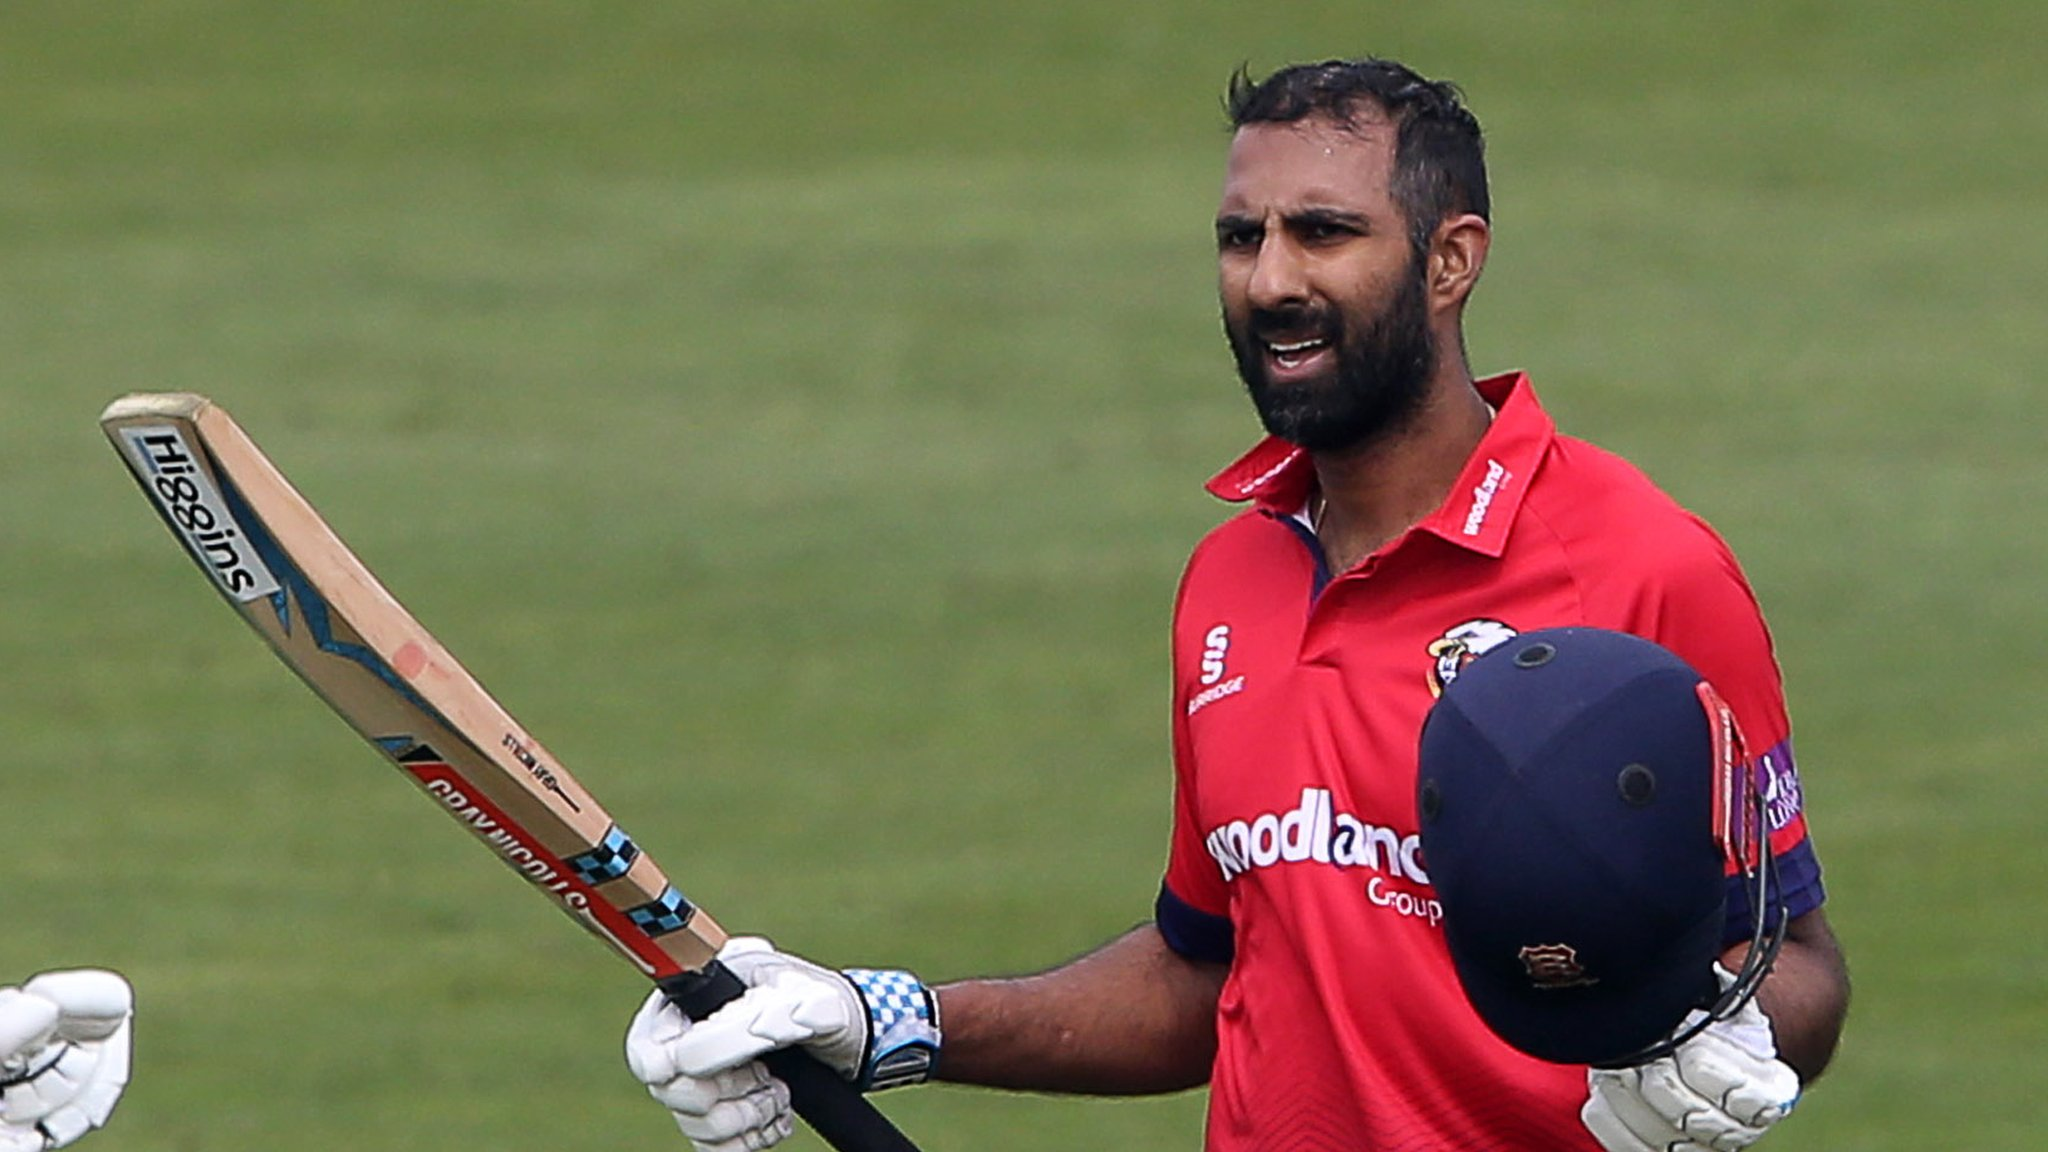 One-Day Cup: Varun Chopra hundred gives Essex easy win over Glamorgan